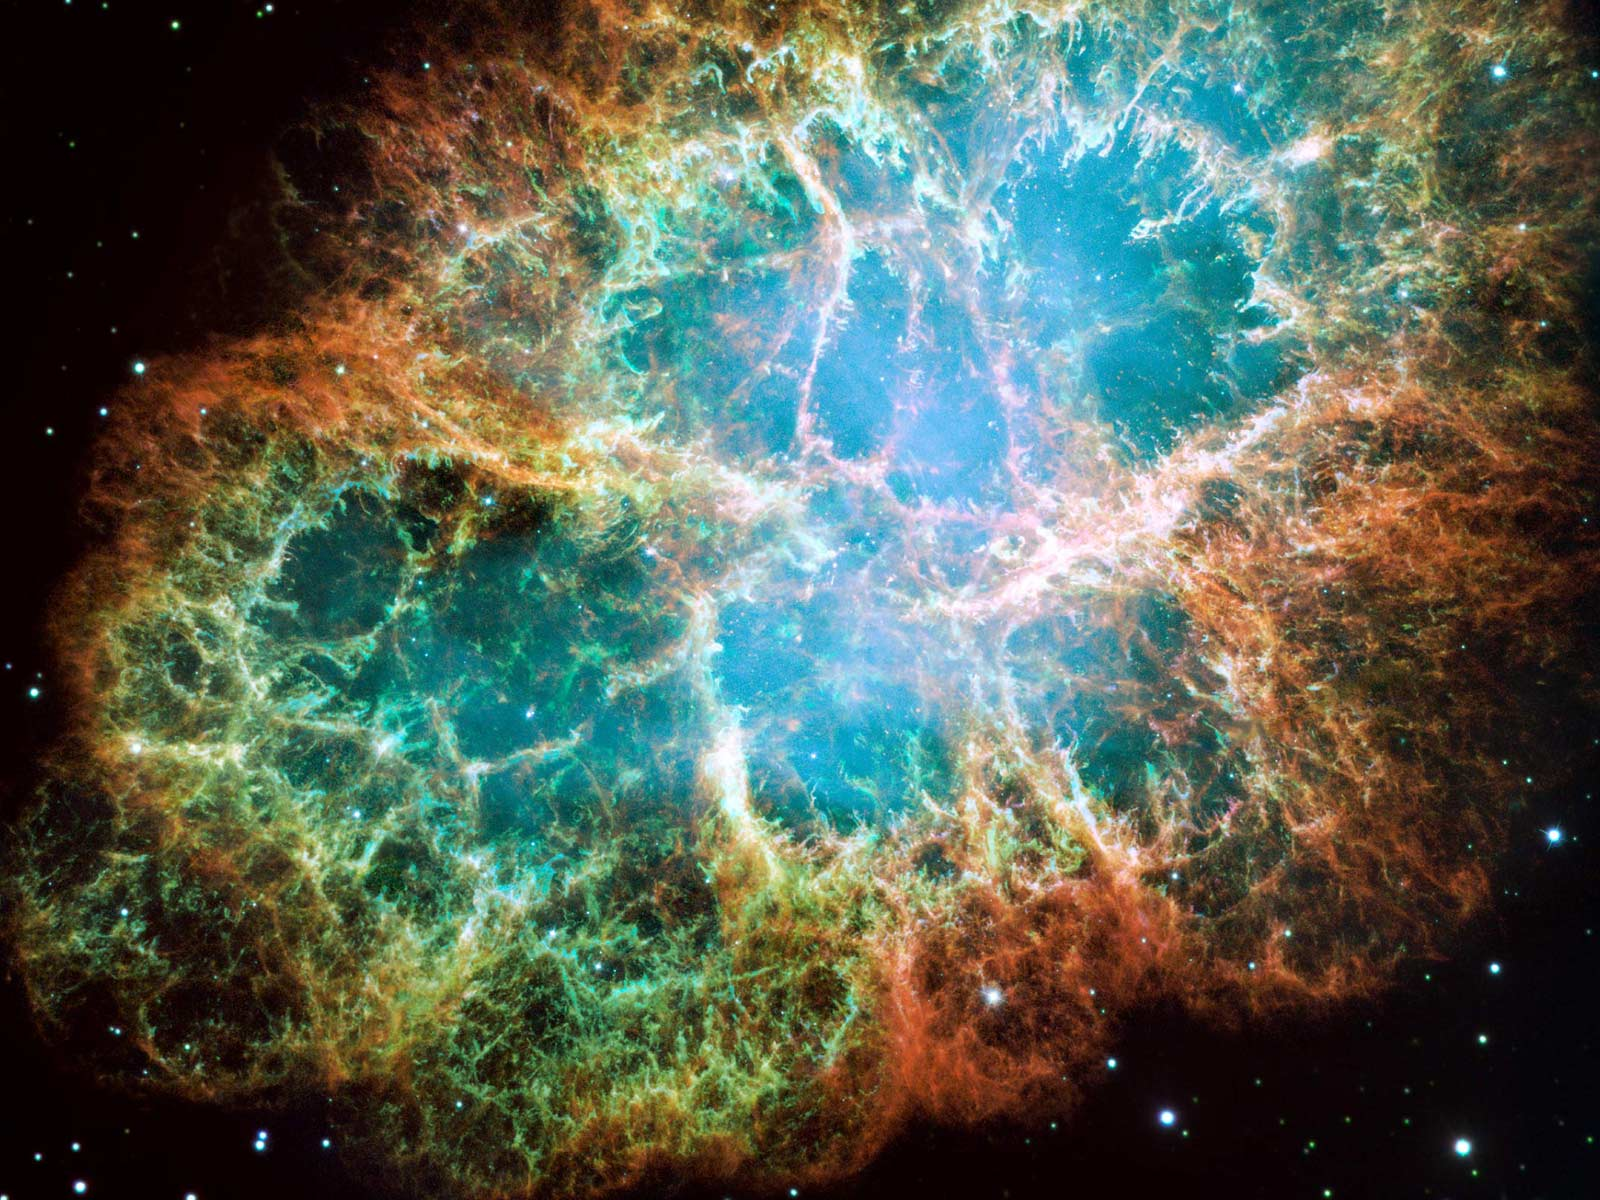 Supernova Explosion Wallpaper Images Pictures   Becuo 1600x1200